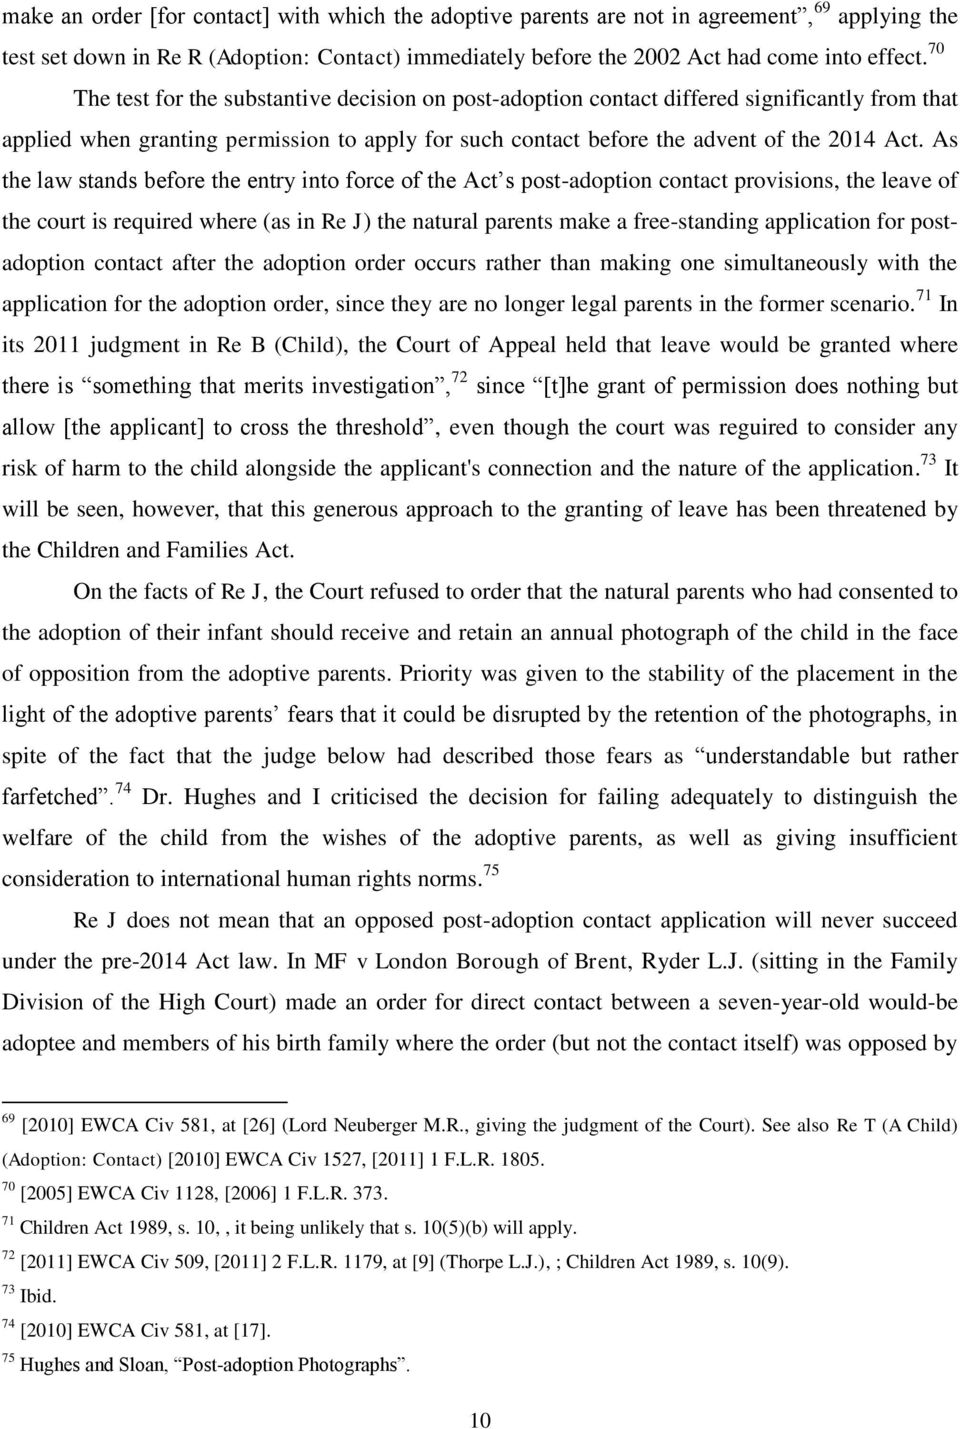 As the law stands before the entry into force of the Act s post-adoption contact provisions, the leave of the court is required where (as in Re J) the natural parents make a free-standing application